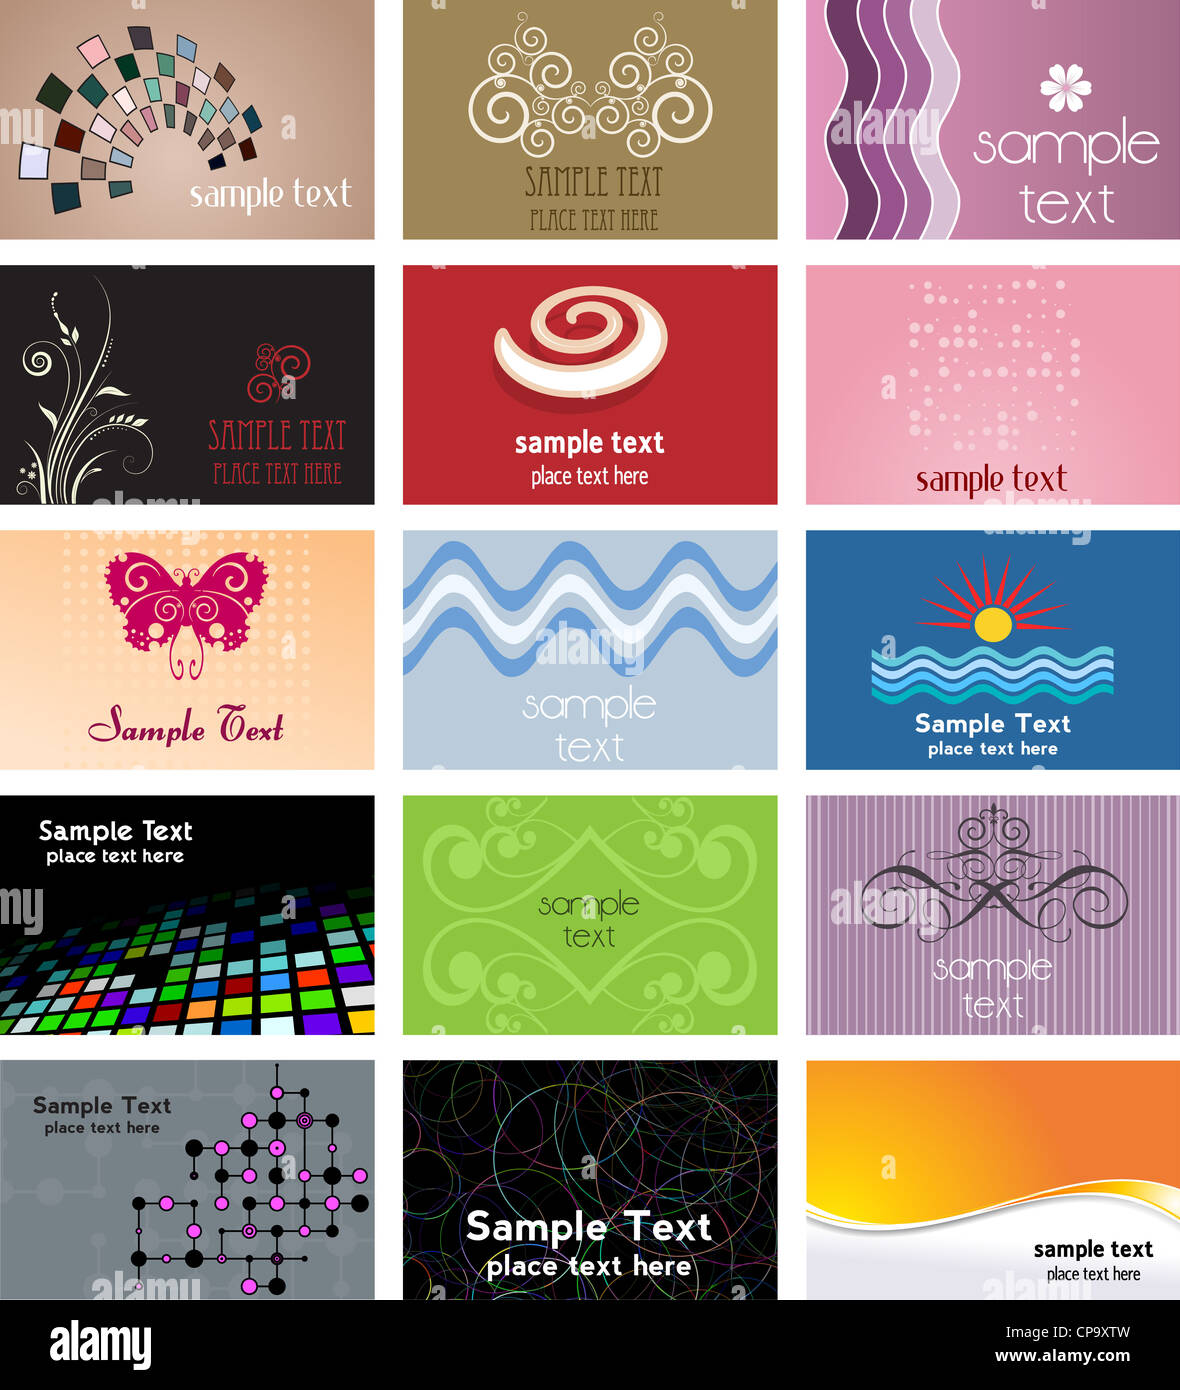 Large collection of various different business card designs stock large collection of various different business card designs magicingreecefo Image collections